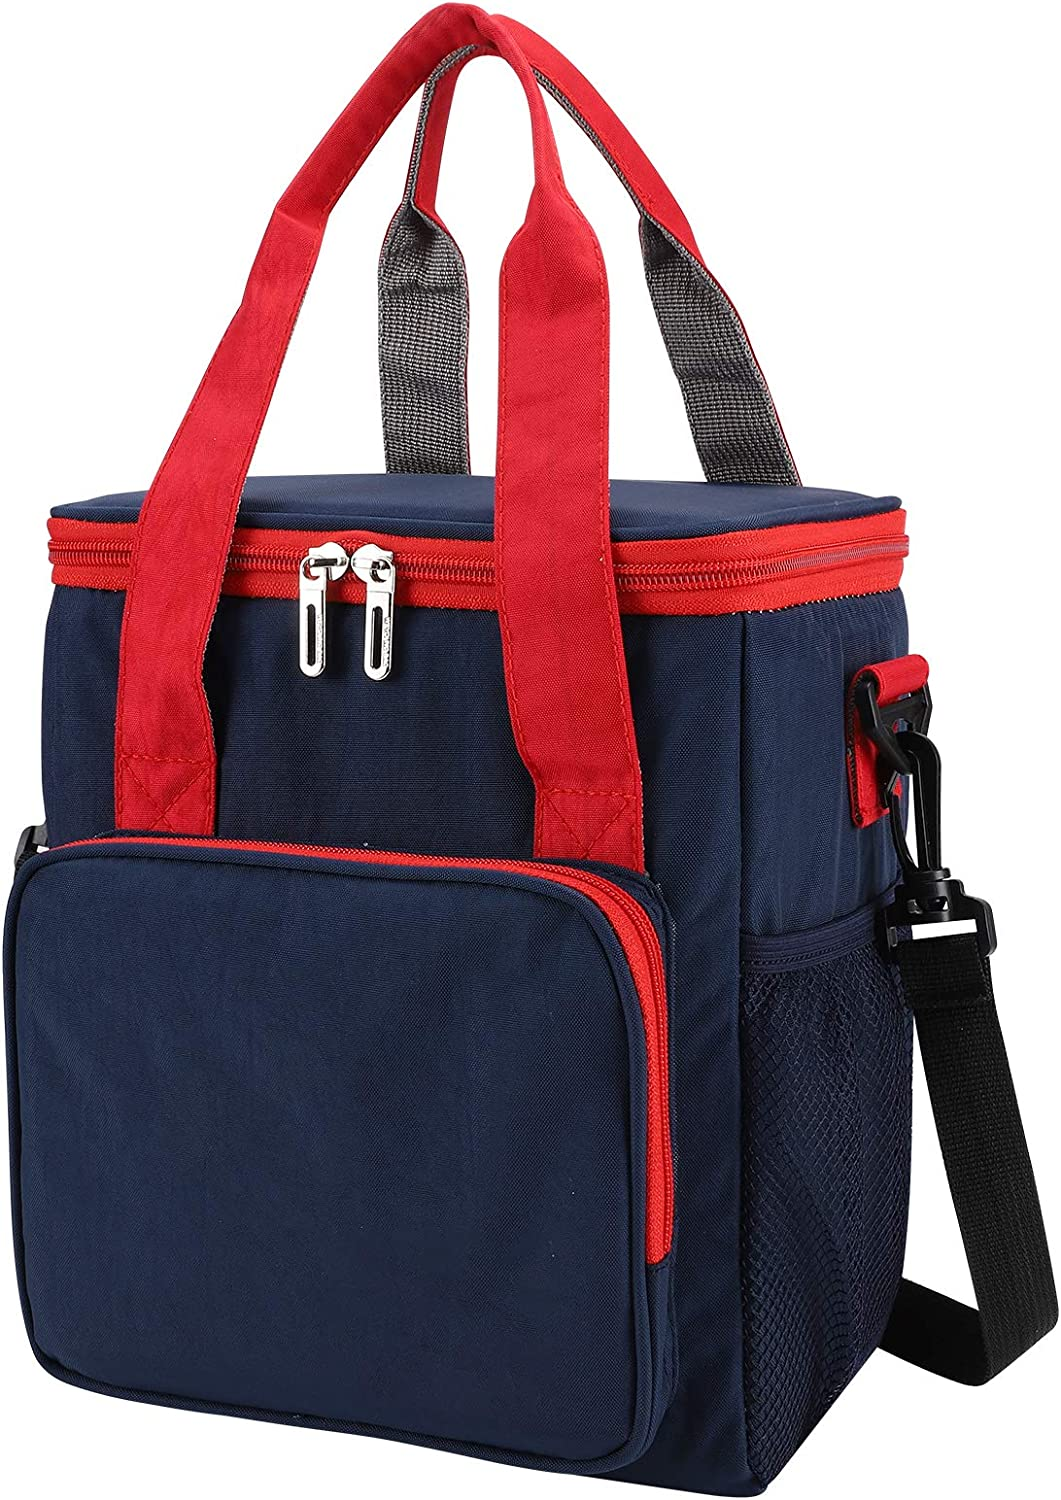 Fufengz Mens Insulated Lunch Tote Bag boxes Leak Proof Lunch Bags for Women Adjustable Shoulder Strap Bag Thermal Insulation Bag (Navy Blue)